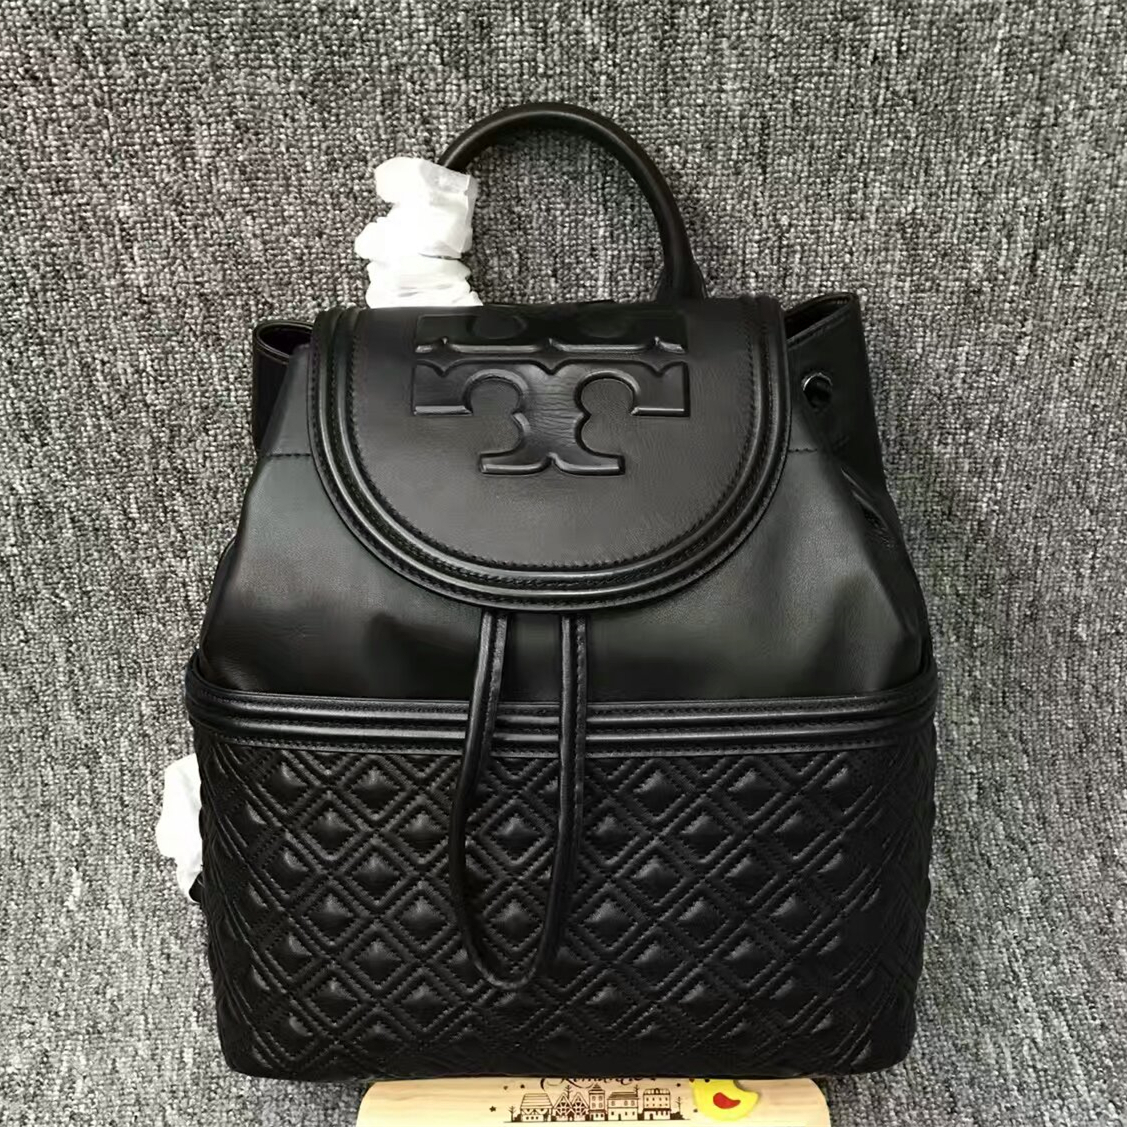 61a96286c583 Authentic Tory Burch Fleming Backpack and 50 similar items.  Mmexport1481874568866. Mmexport1481874568866